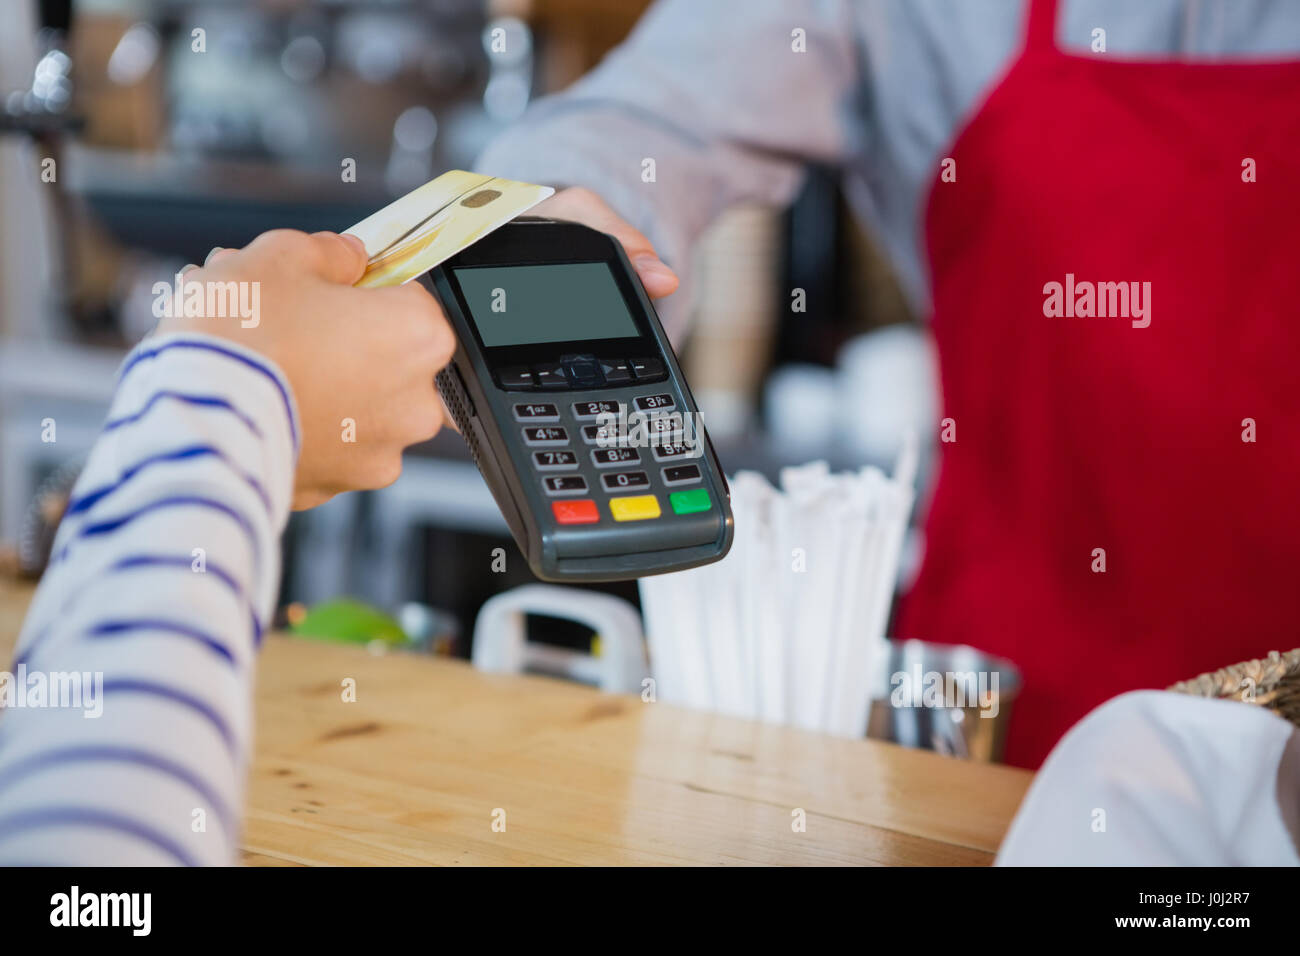 Woman making payment through credit card at counter in café - Stock Image